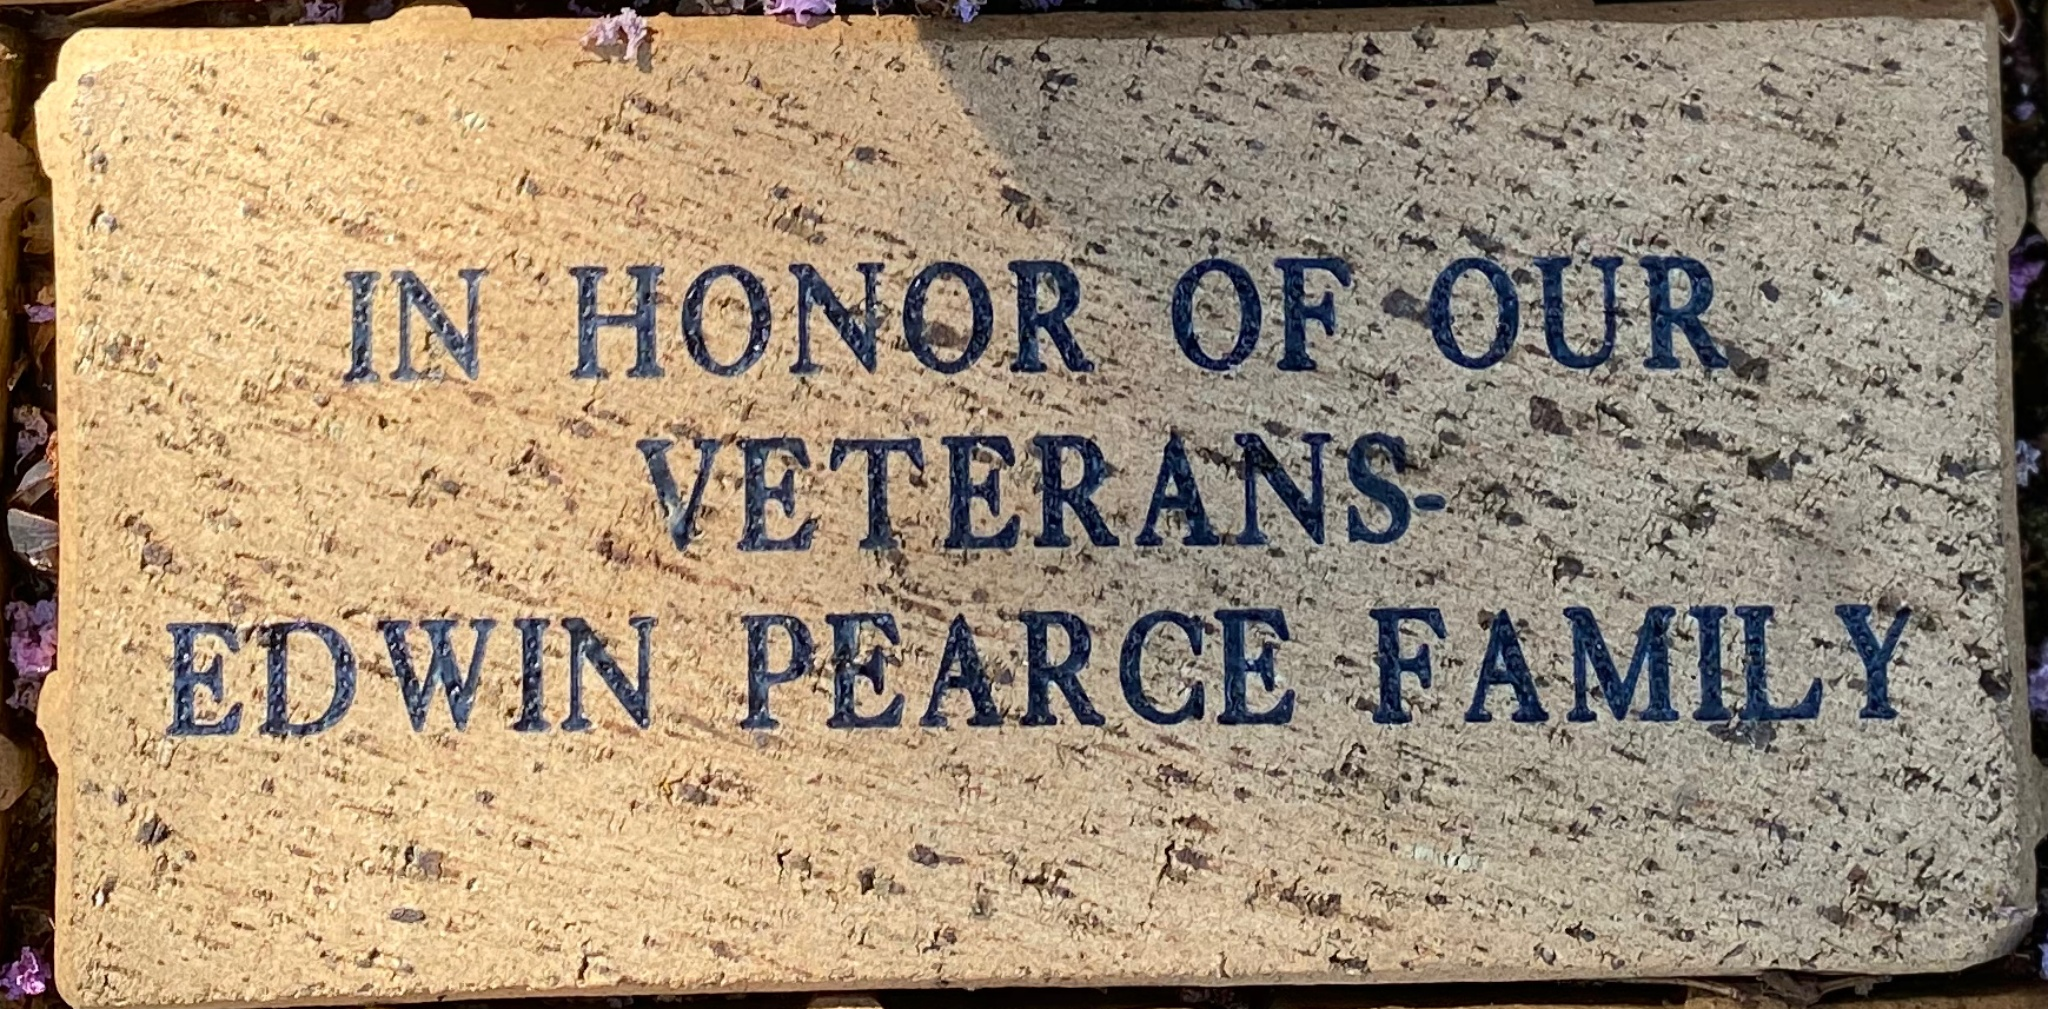 IN HONOR OF OUR VETERANS EDWIN PEARCE FAMILY